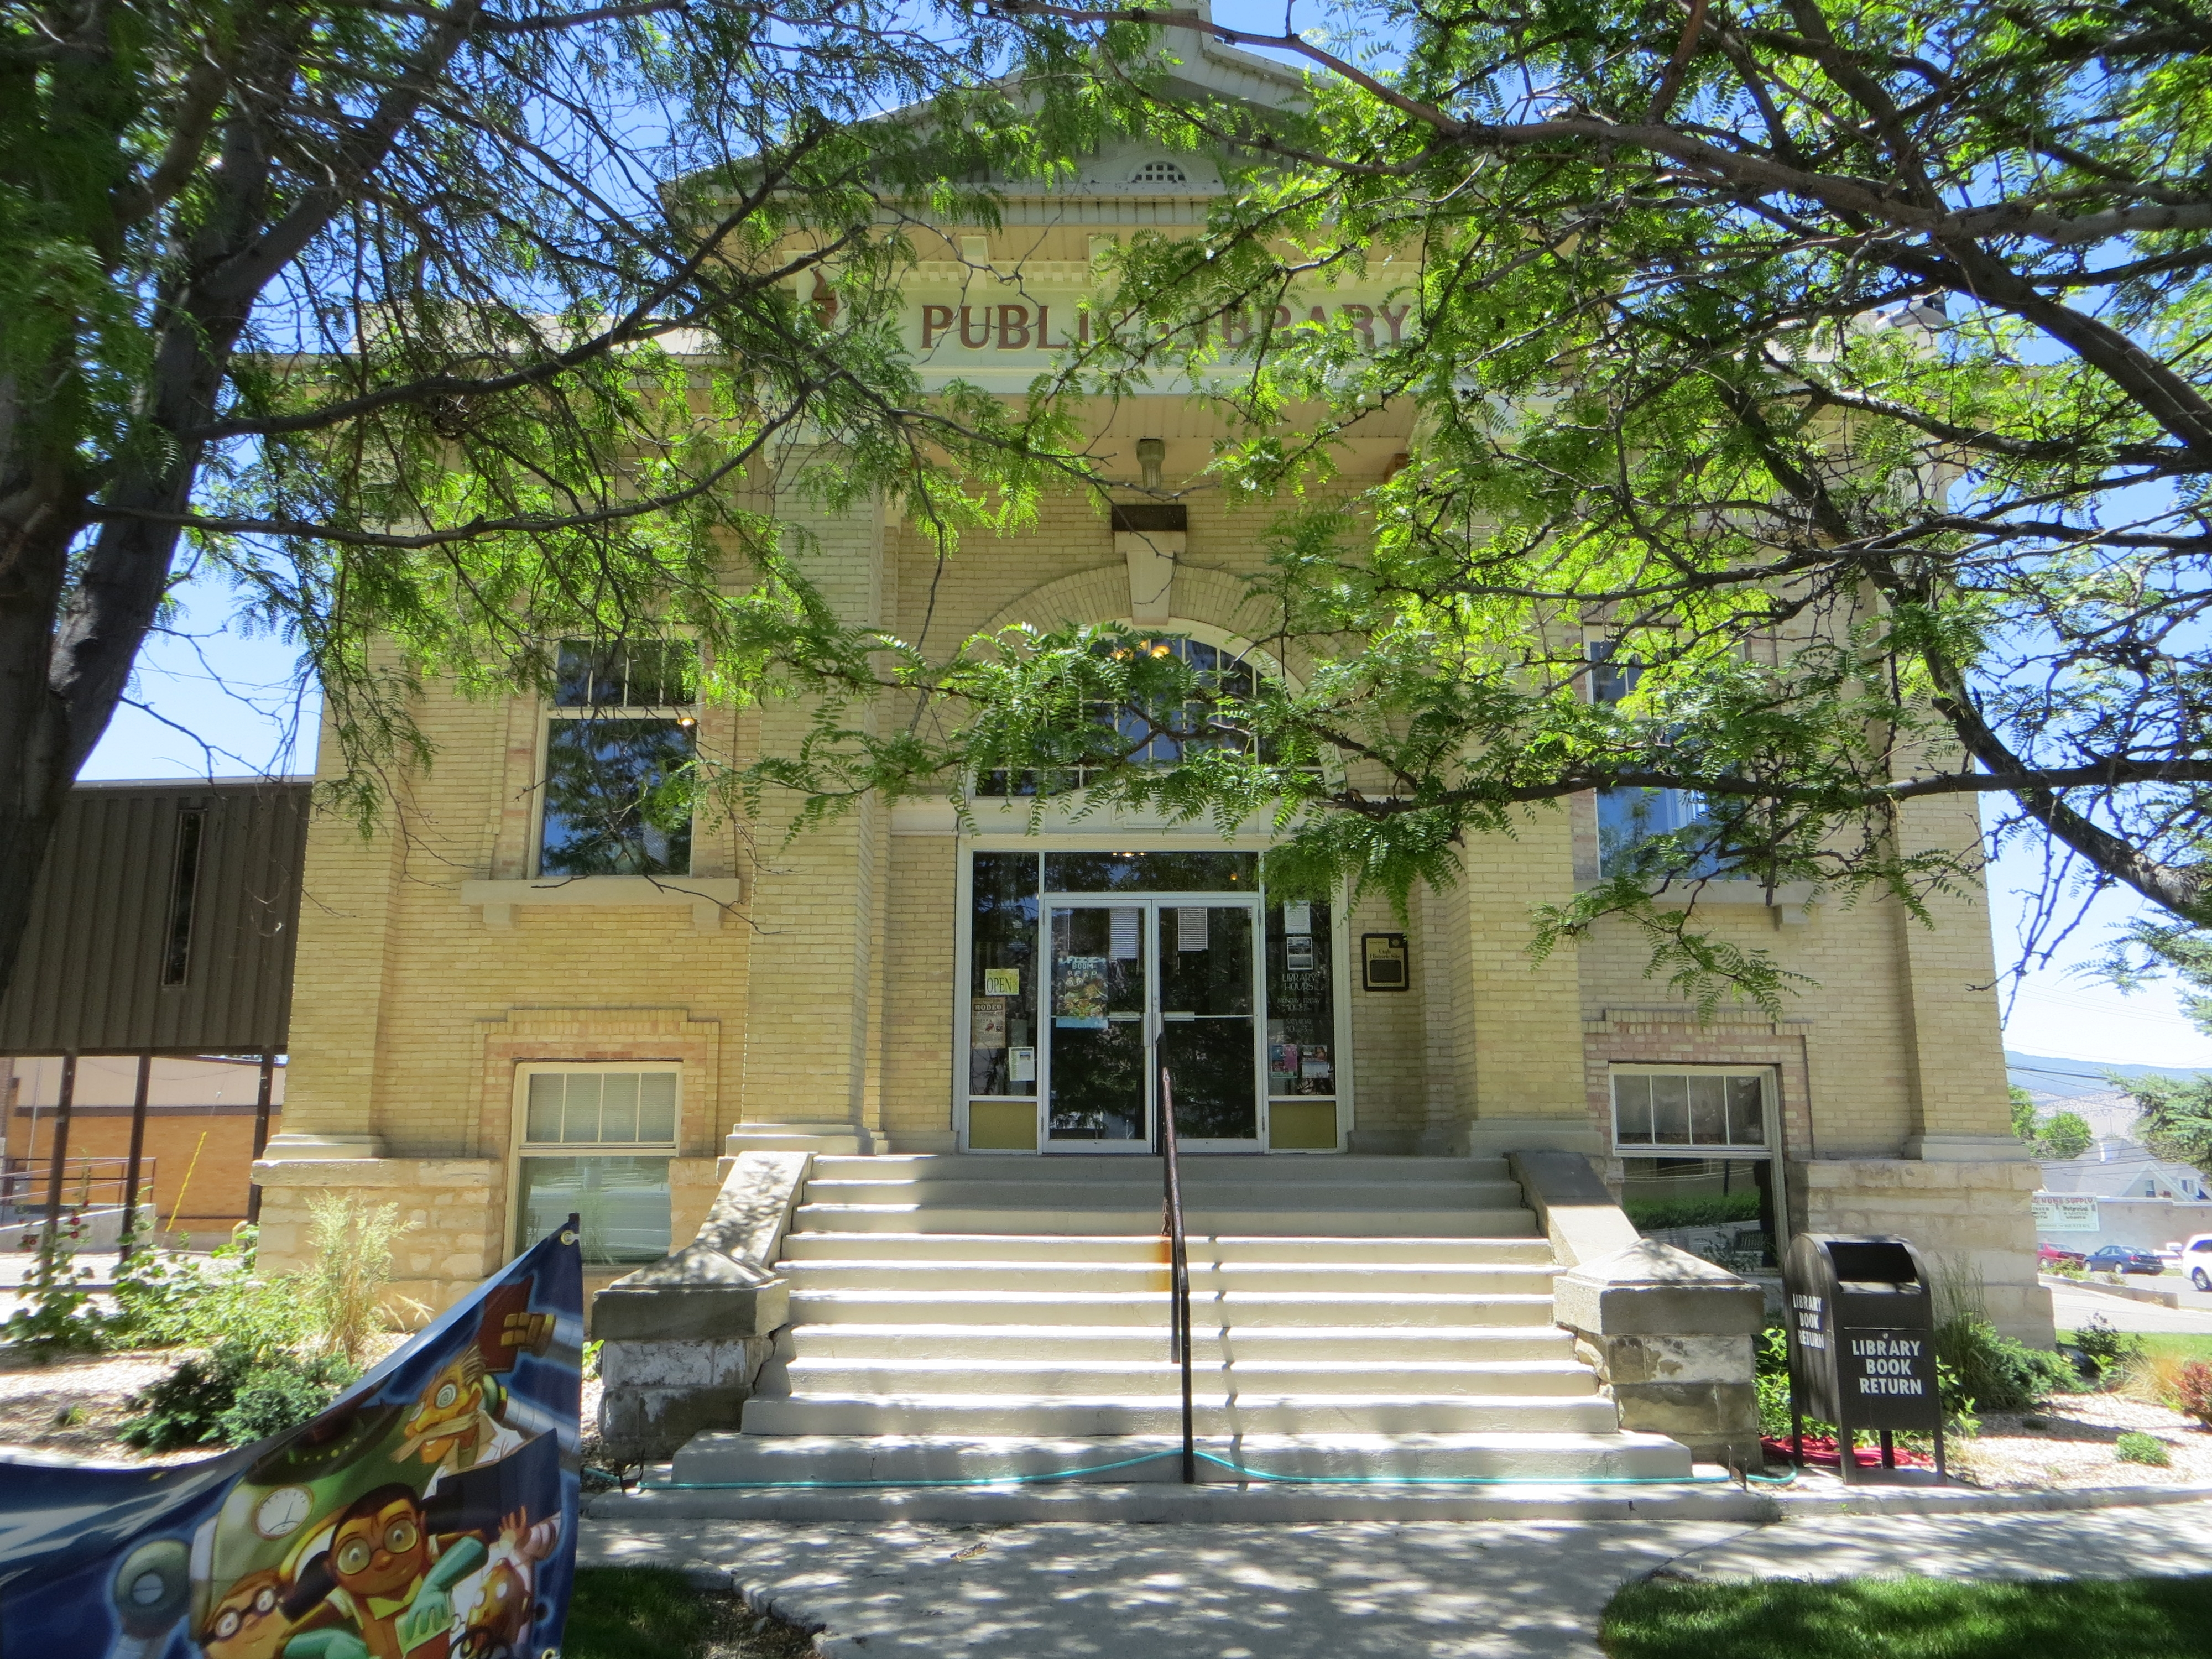 Manti Carnegie Library